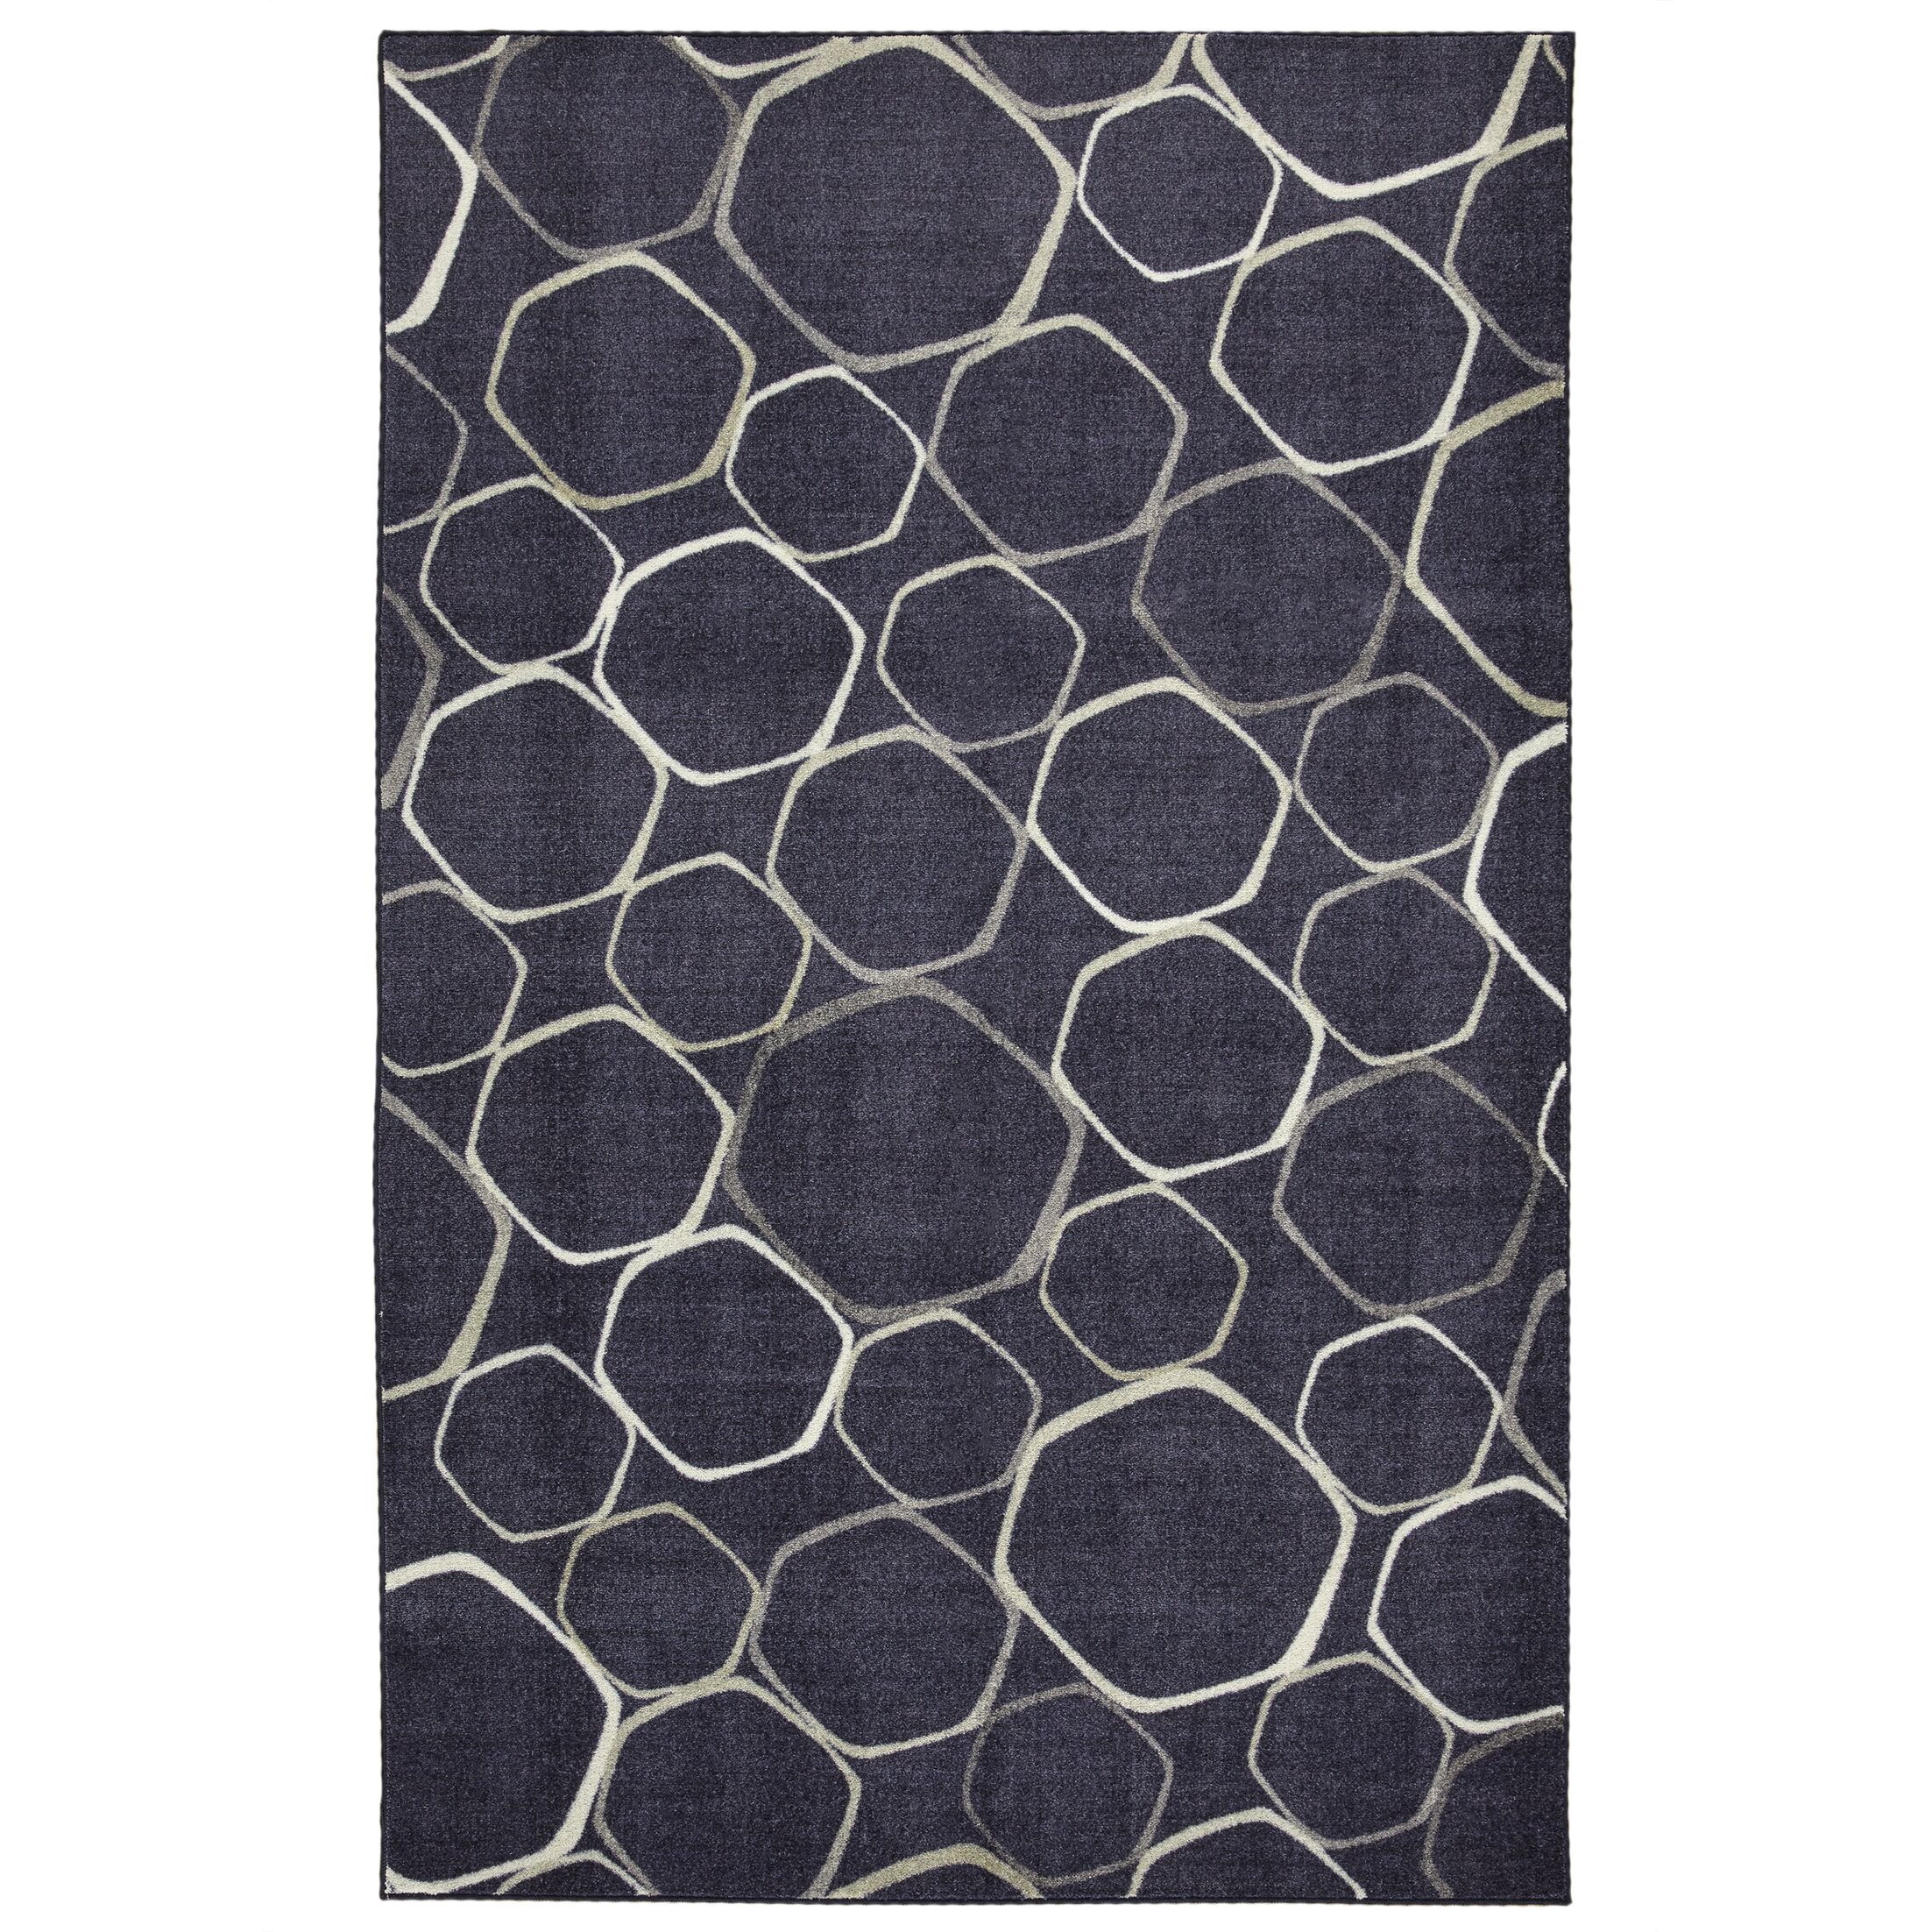 Locher Graphic Circles Indigo/White Area Rug Rug Size: Rectangle 8' x 10'